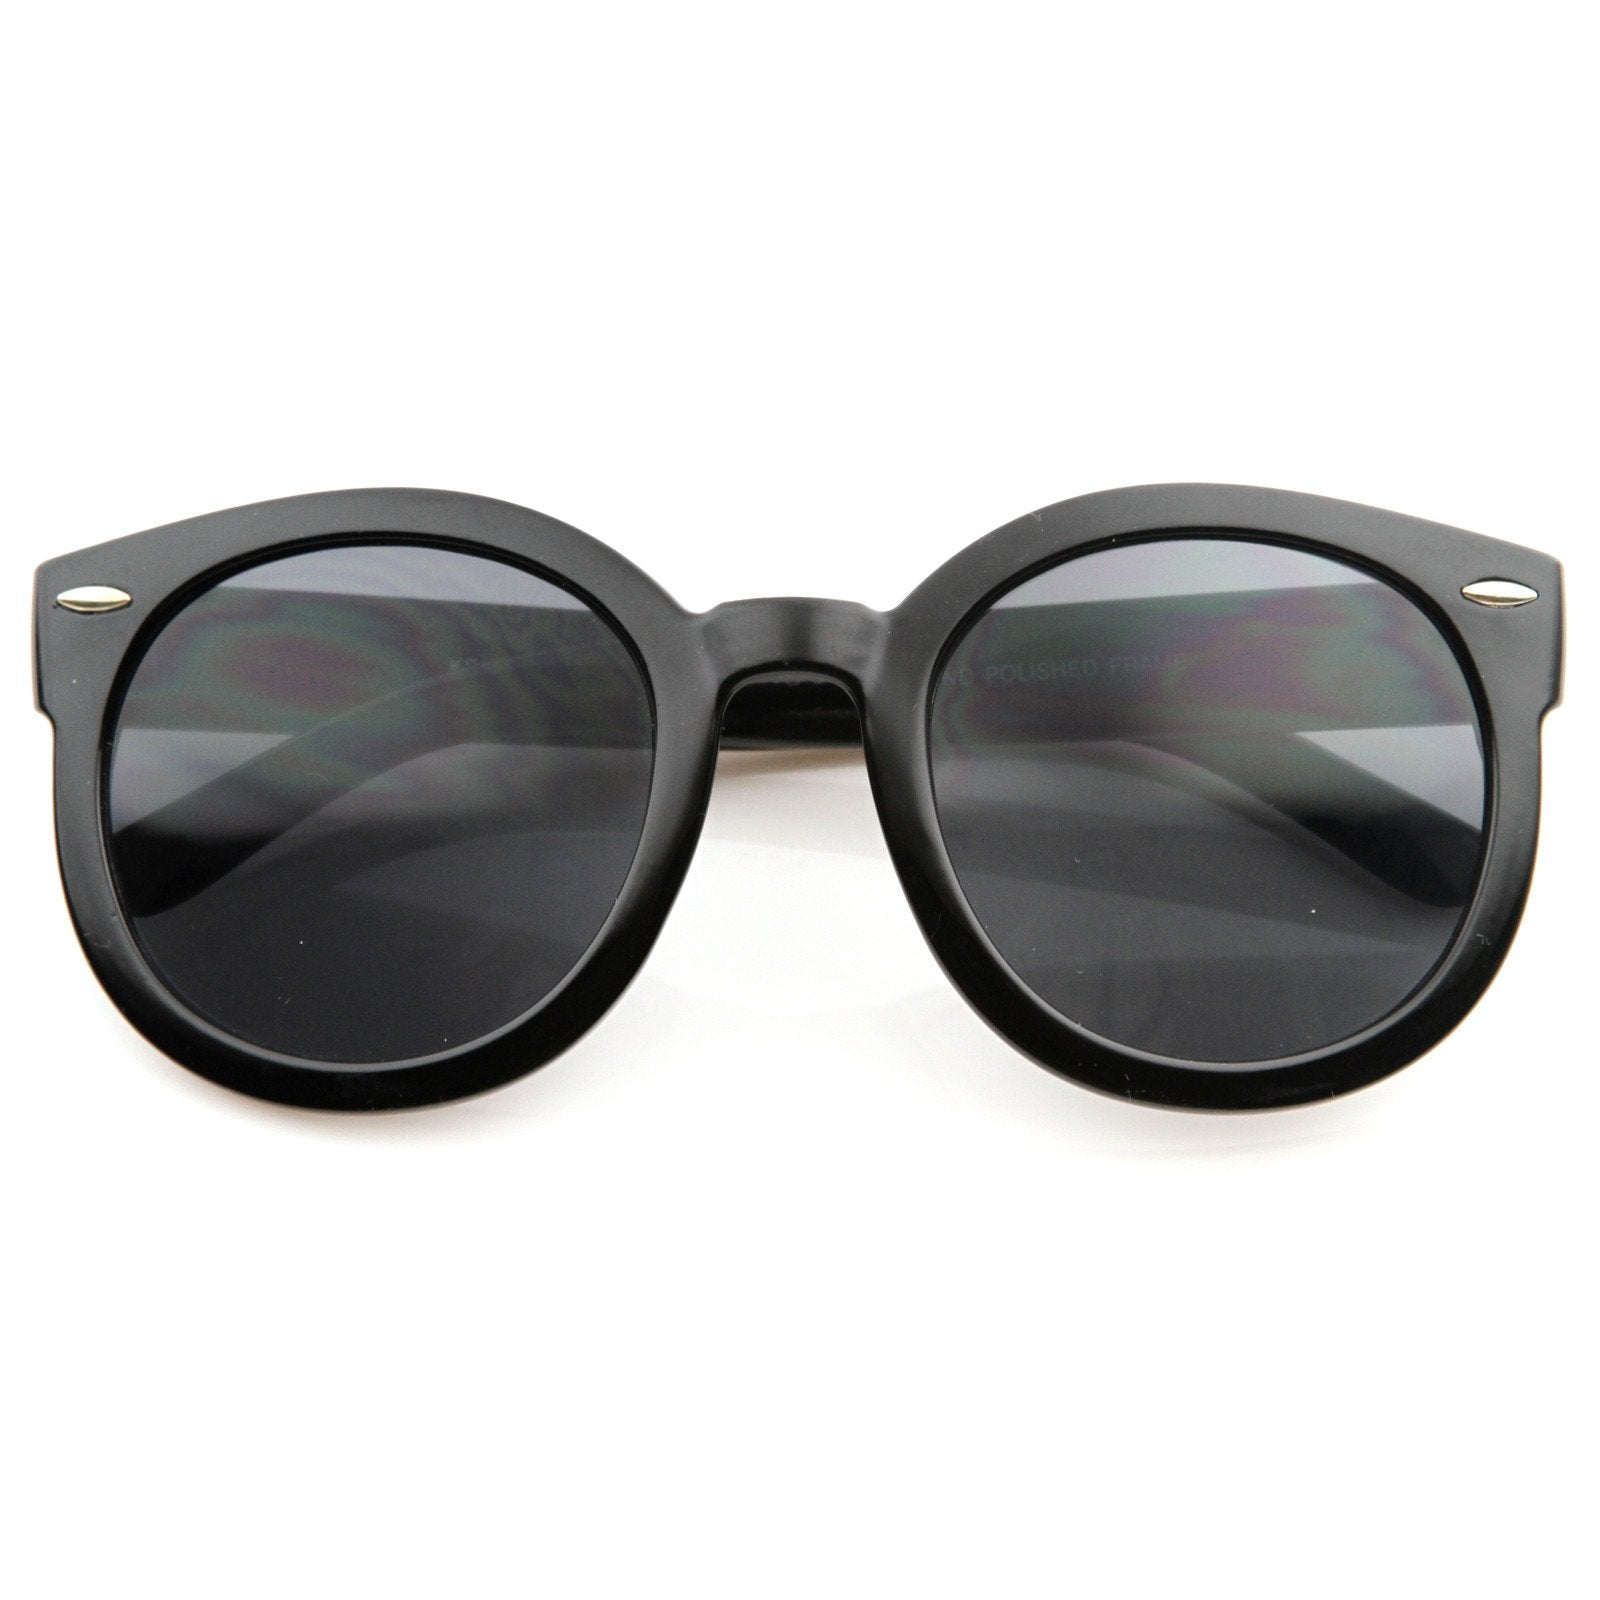 3cab5d04563d6 Modern Rounded Circle P3 Indie Fashion Sunglasses - zeroUV